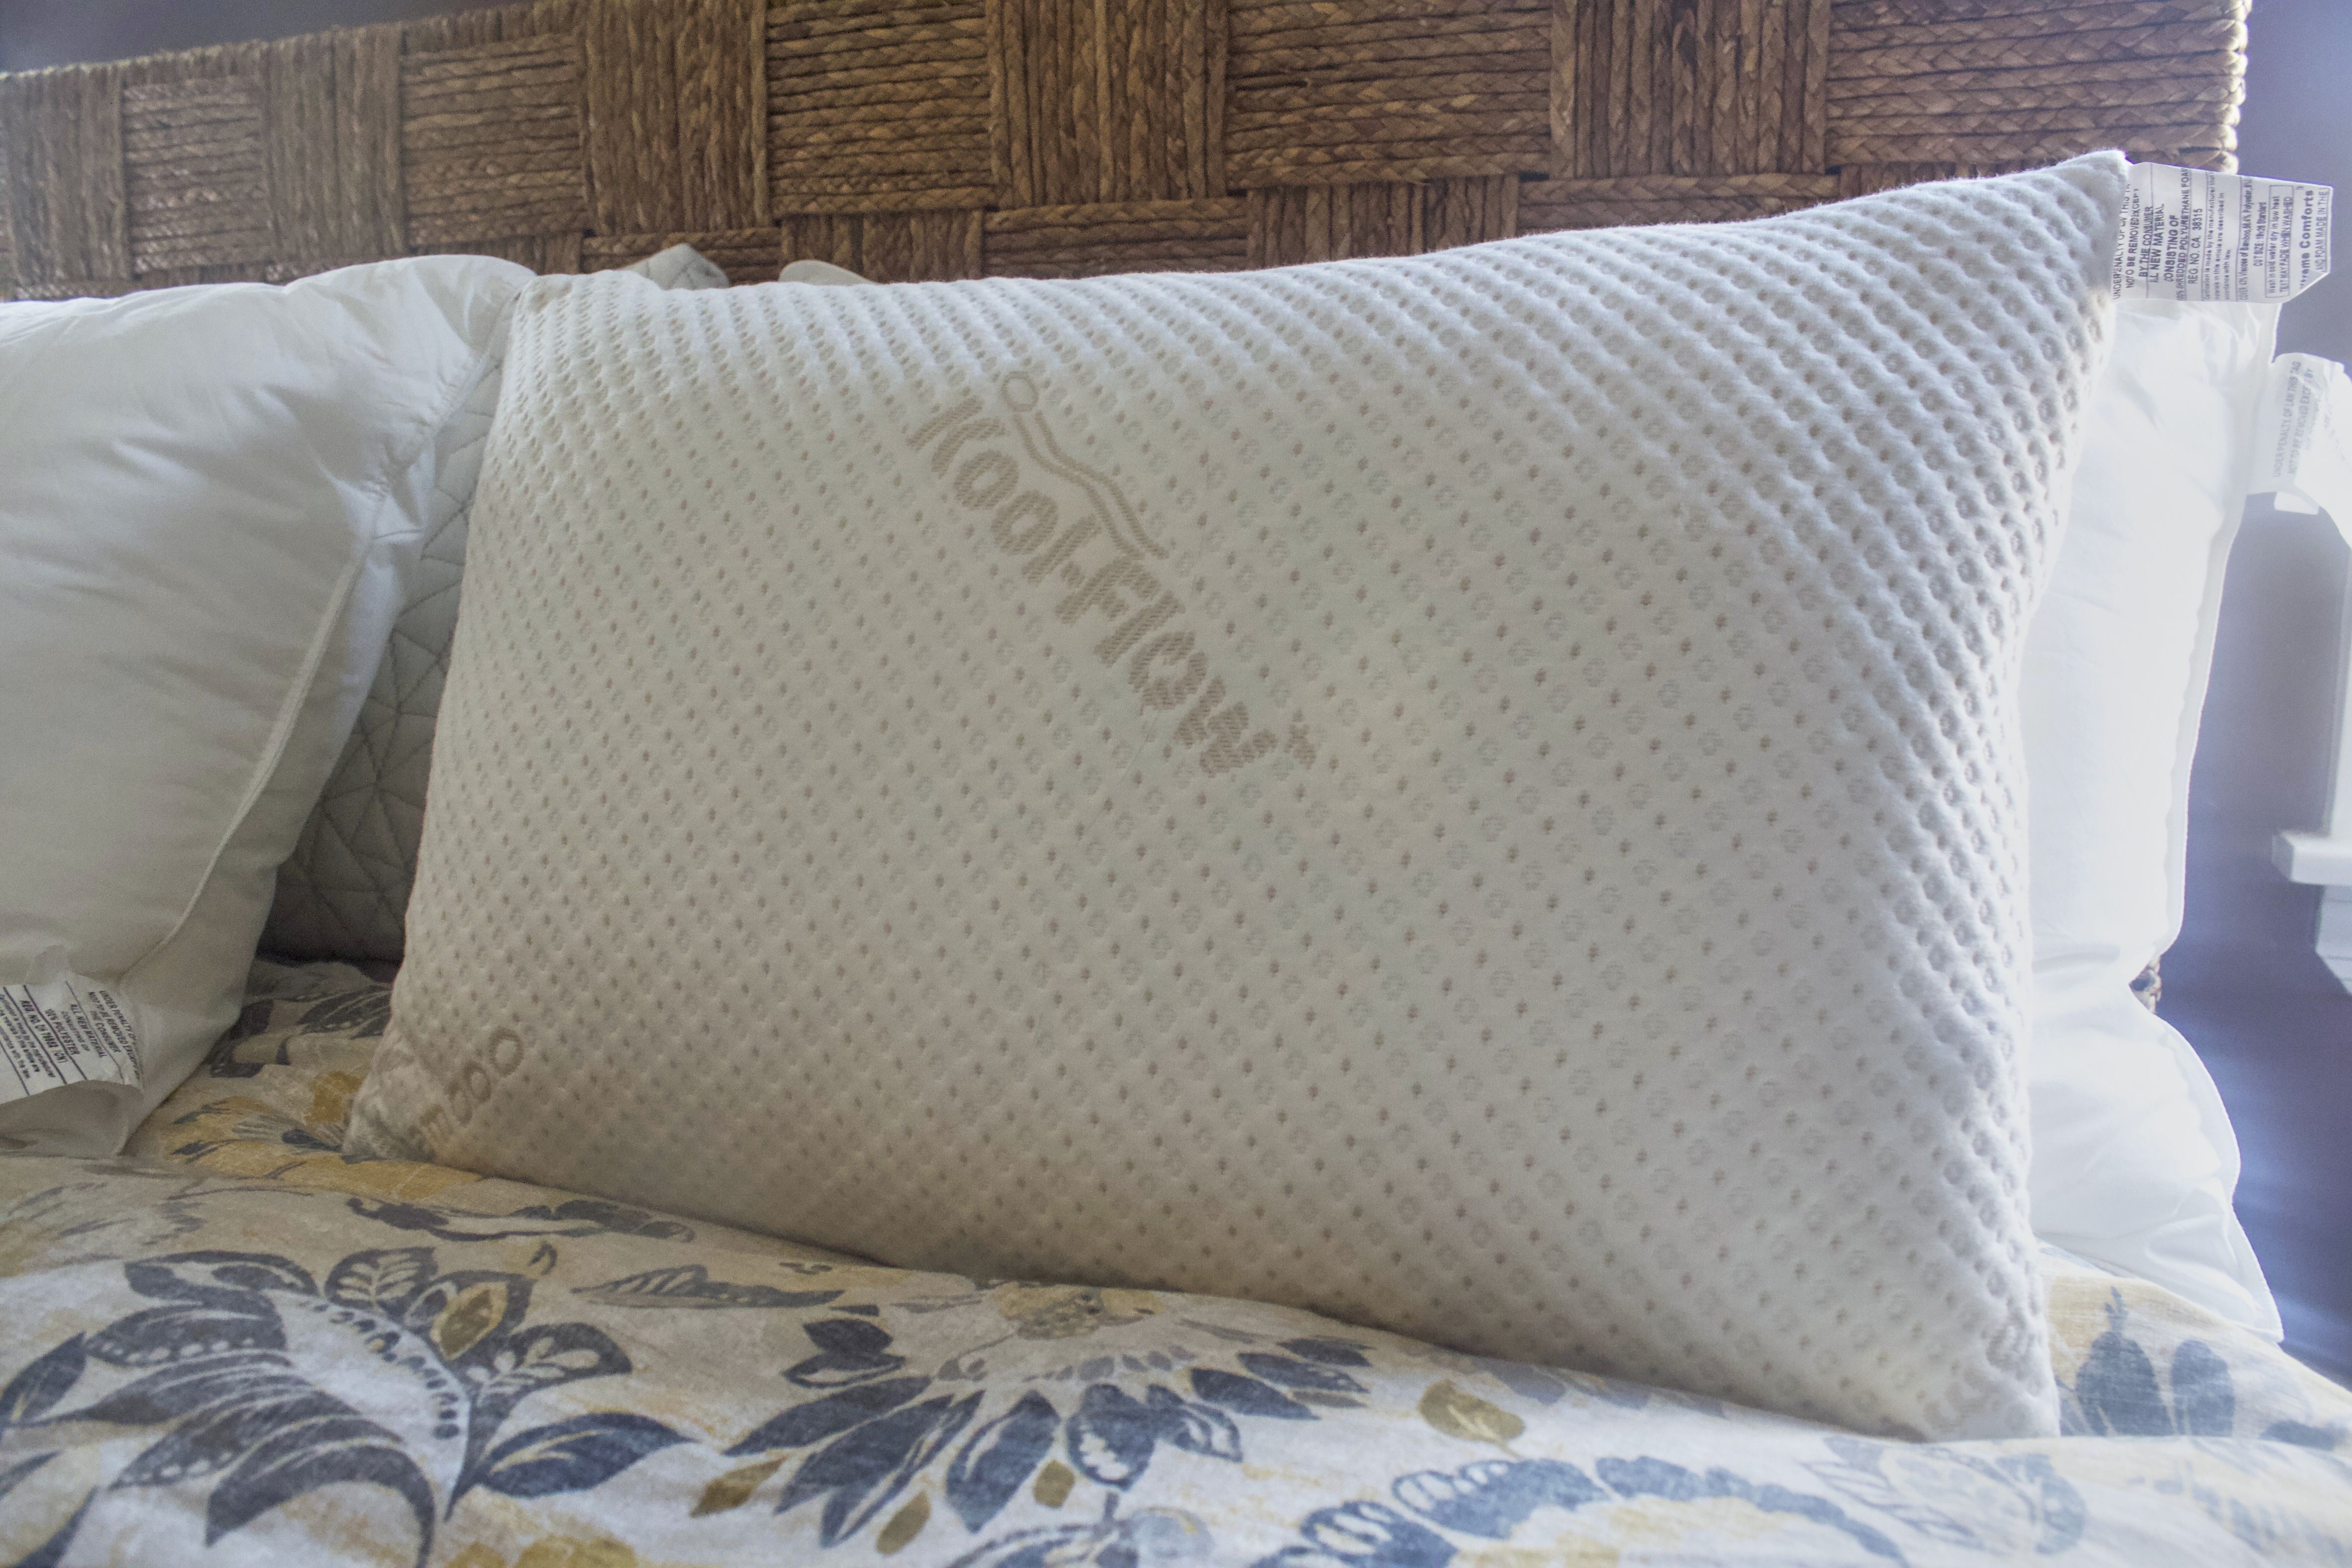 Xtreme Comforts Bamboo Pillow Review Worth The Splurge